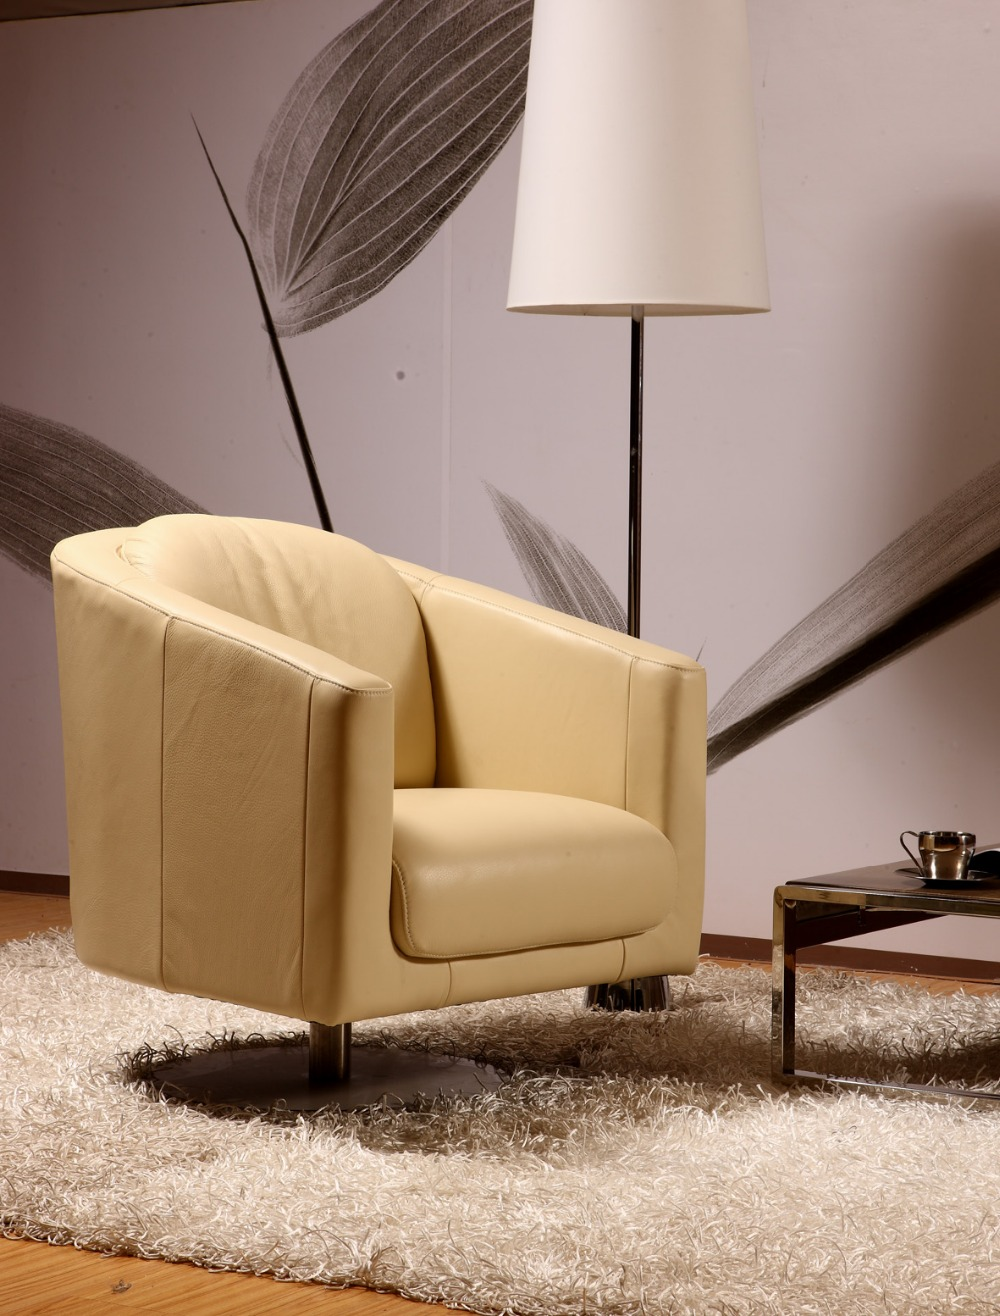 Popular Leisure ChairBuy Cheap Leisure Chair Lots From China - Leisure furniture